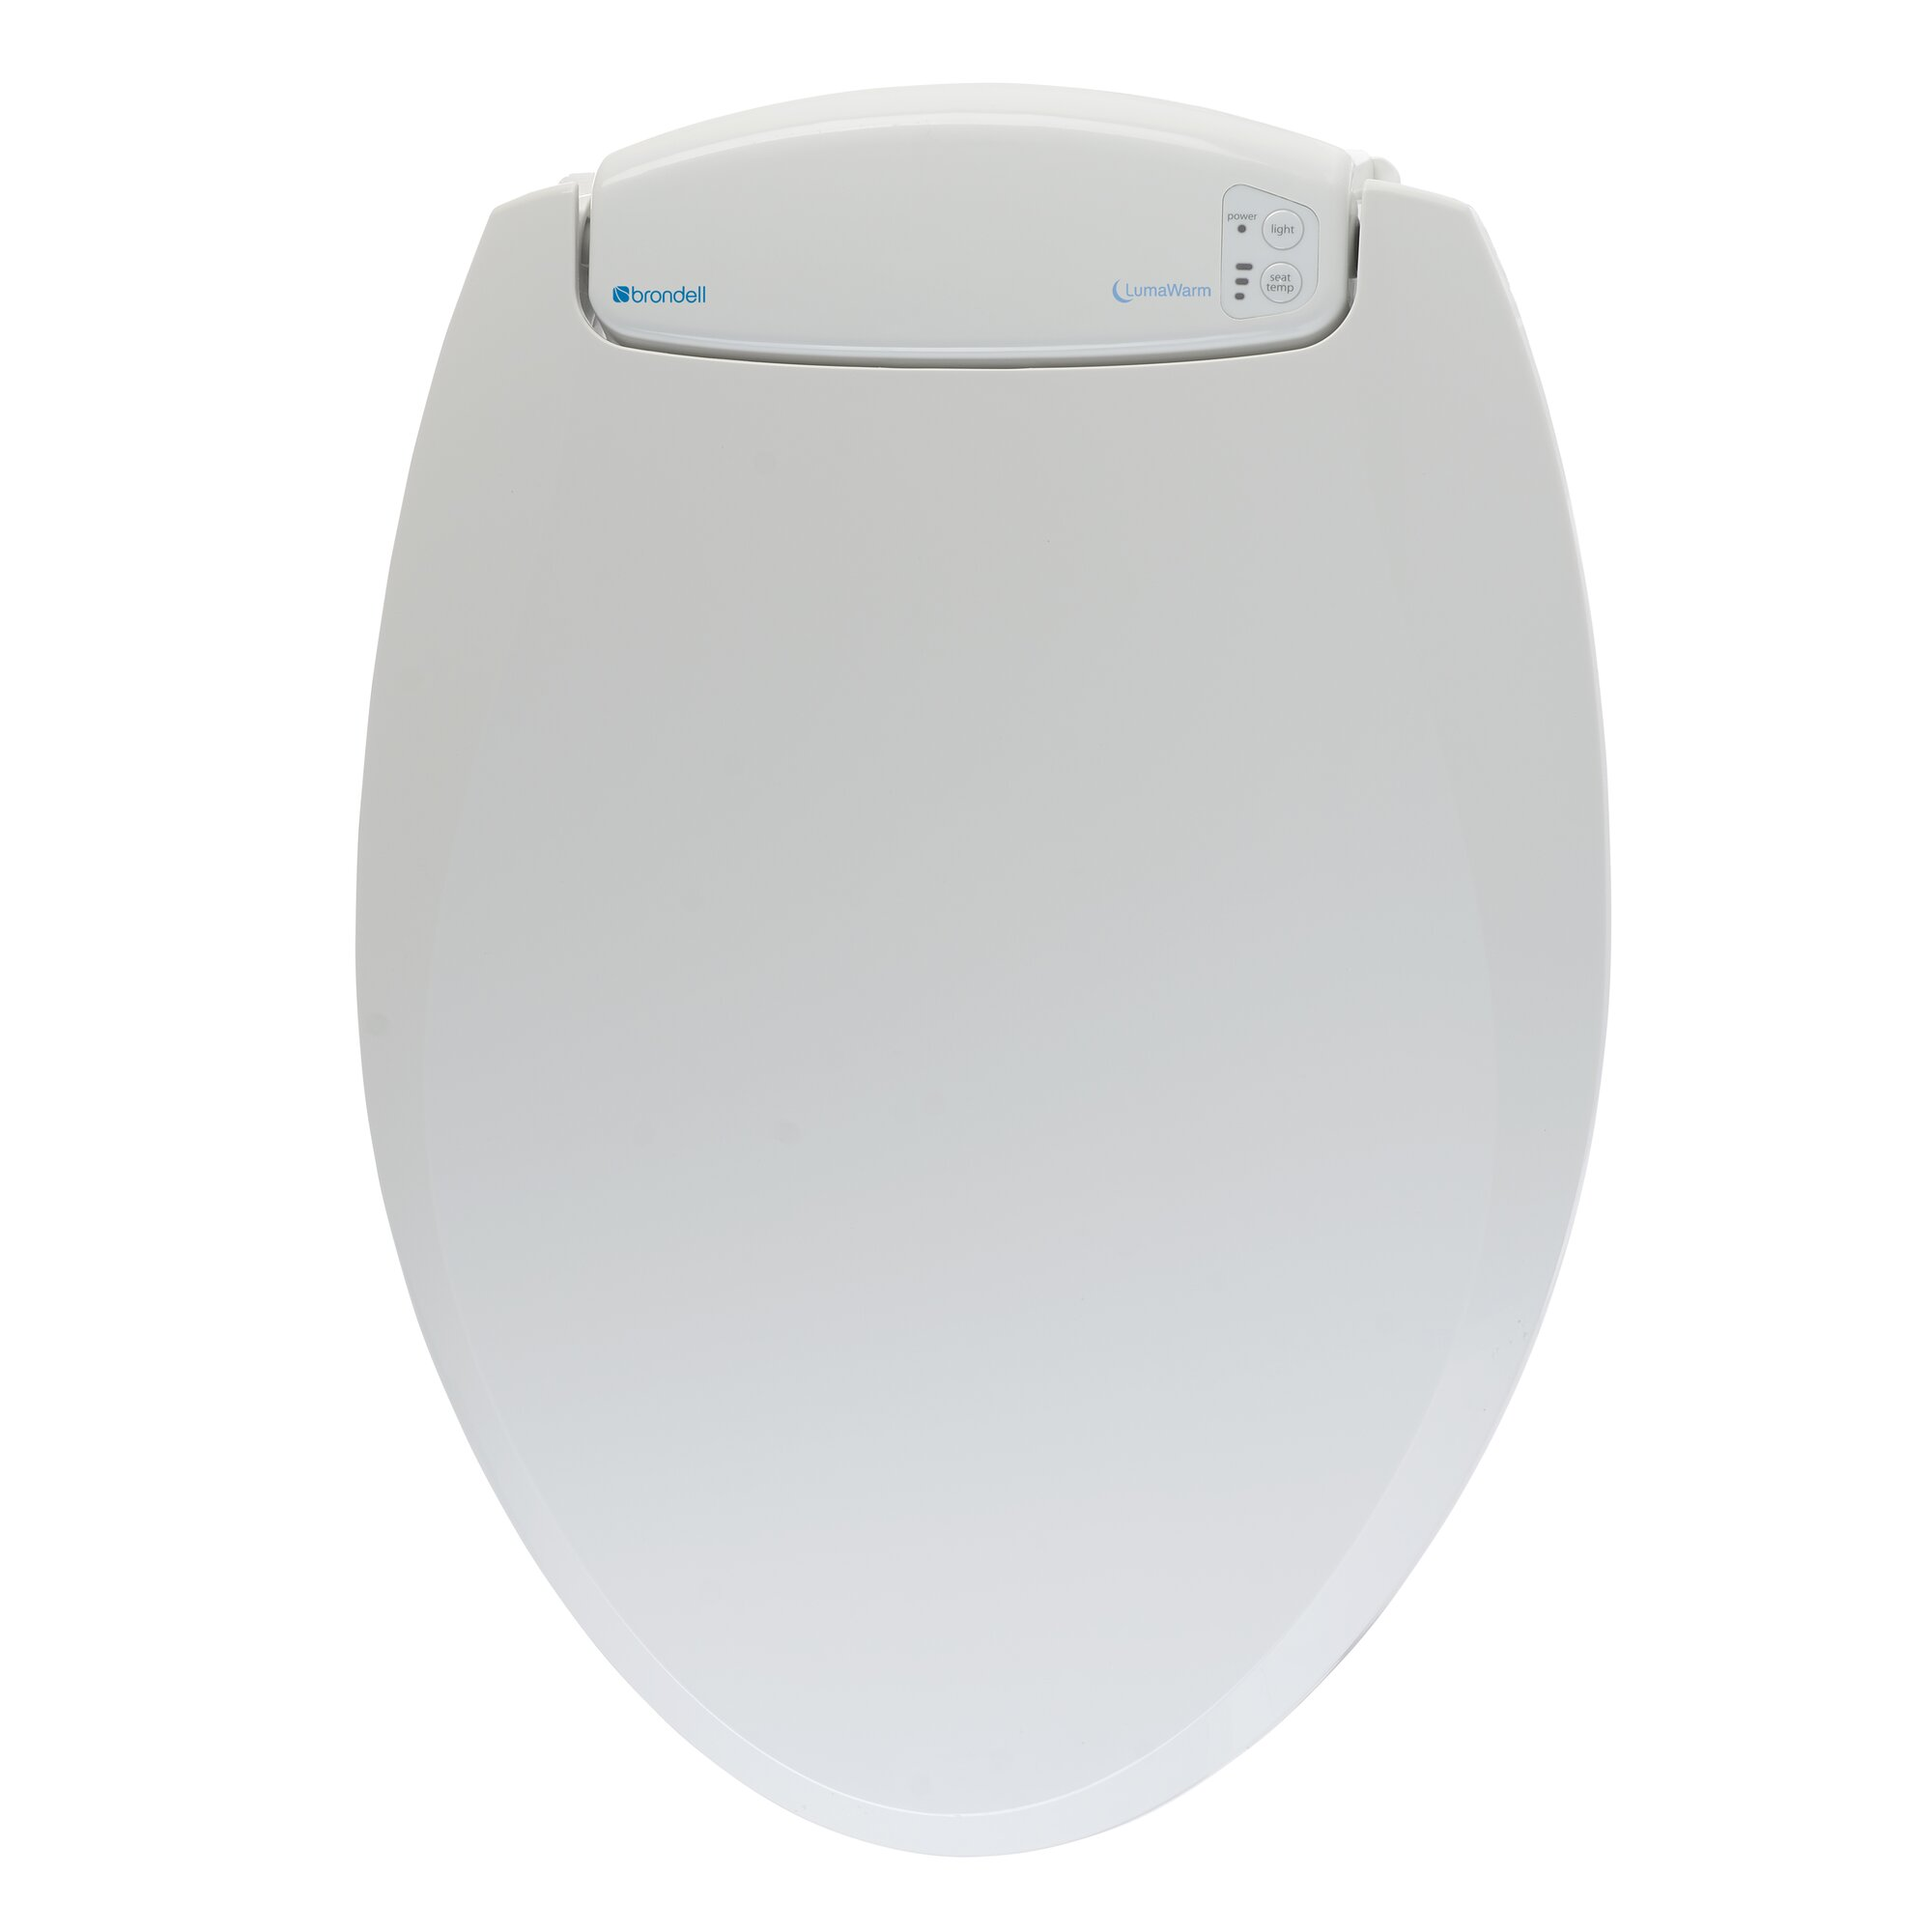 Brondell LumaWarm Heated Nightlight Toilet Seat  Reviews Wayfair - Oak toilet seat soft close